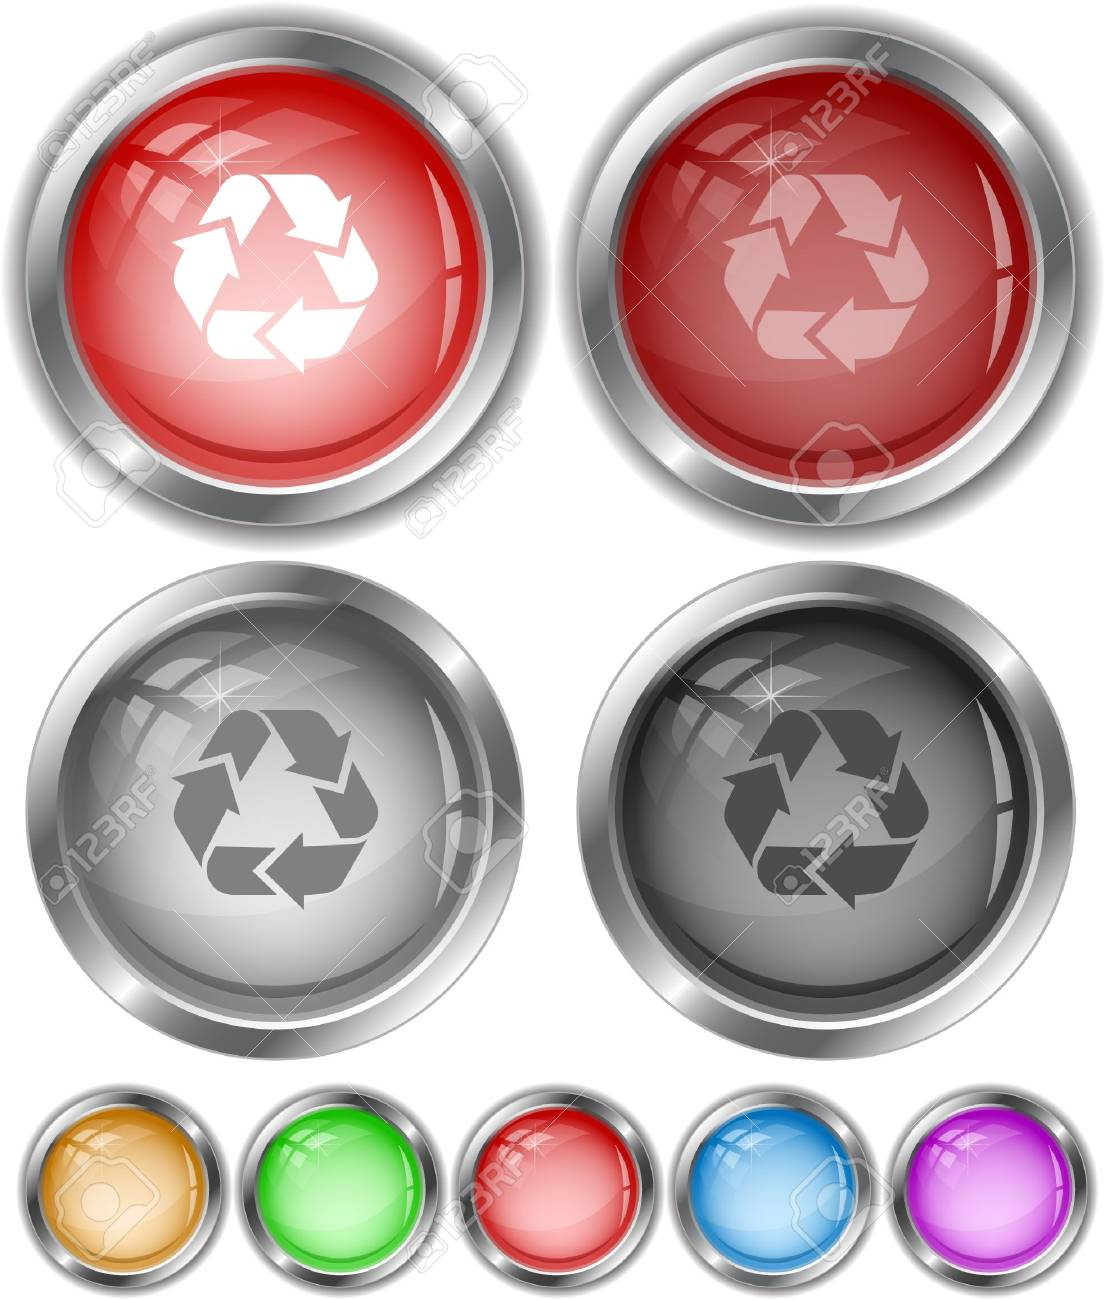 Recycle symbol. internet buttons. Stock Vector - 6732602